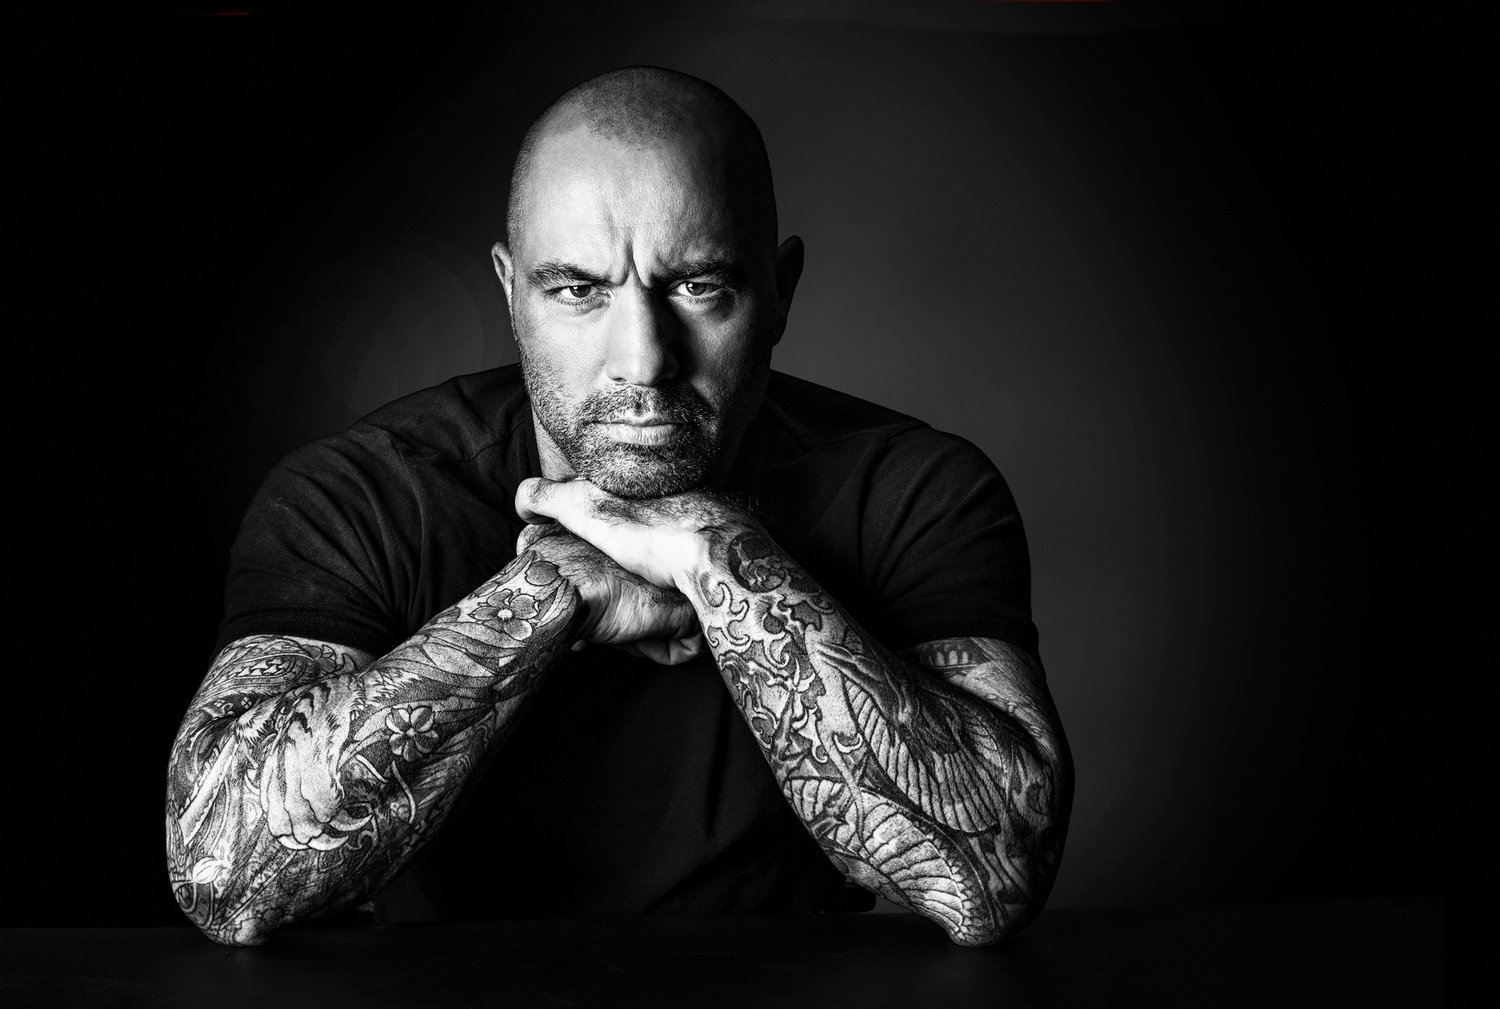 Joe Rogan Married Jessica Rogan and Is Living Happily With Kids, No Divorce Issues Till Date!